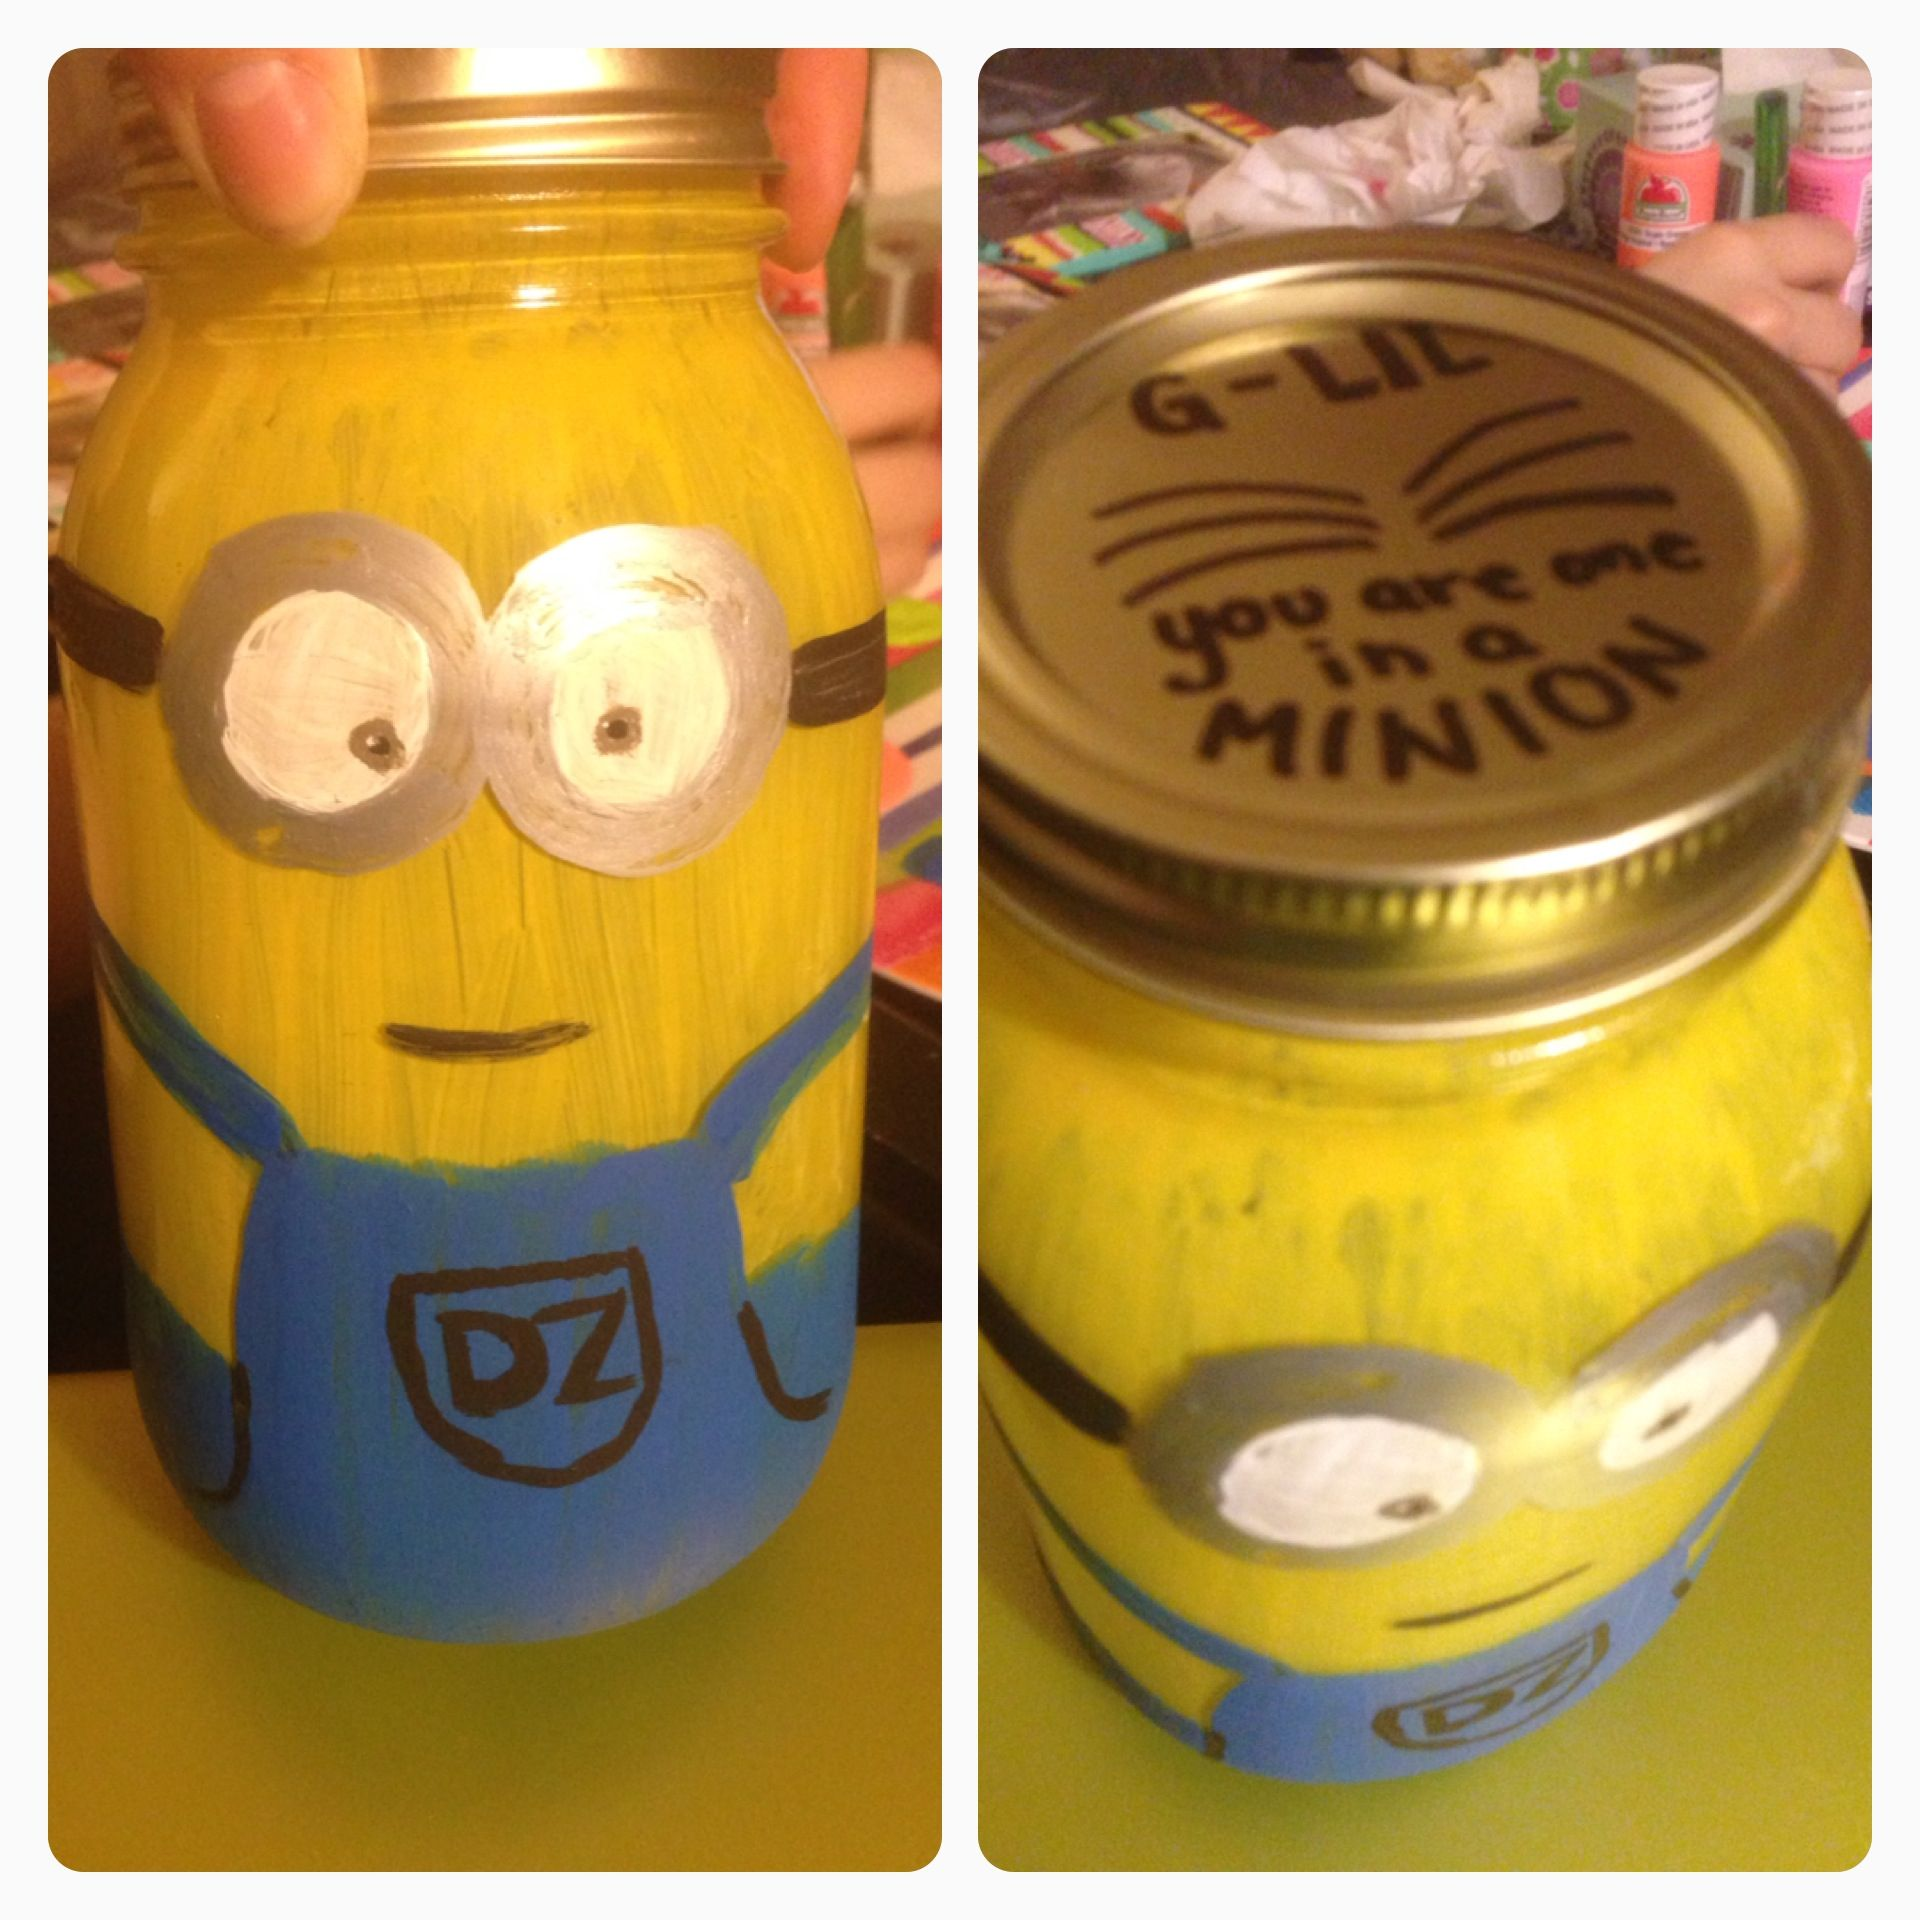 The best place to find Minion Merchandise, Figures and other Minion related goodies at an affordable price. We have Limited edition products and Huge sales! Our goal is to provide quality service to our customers with Unique & High quality Minion related items.